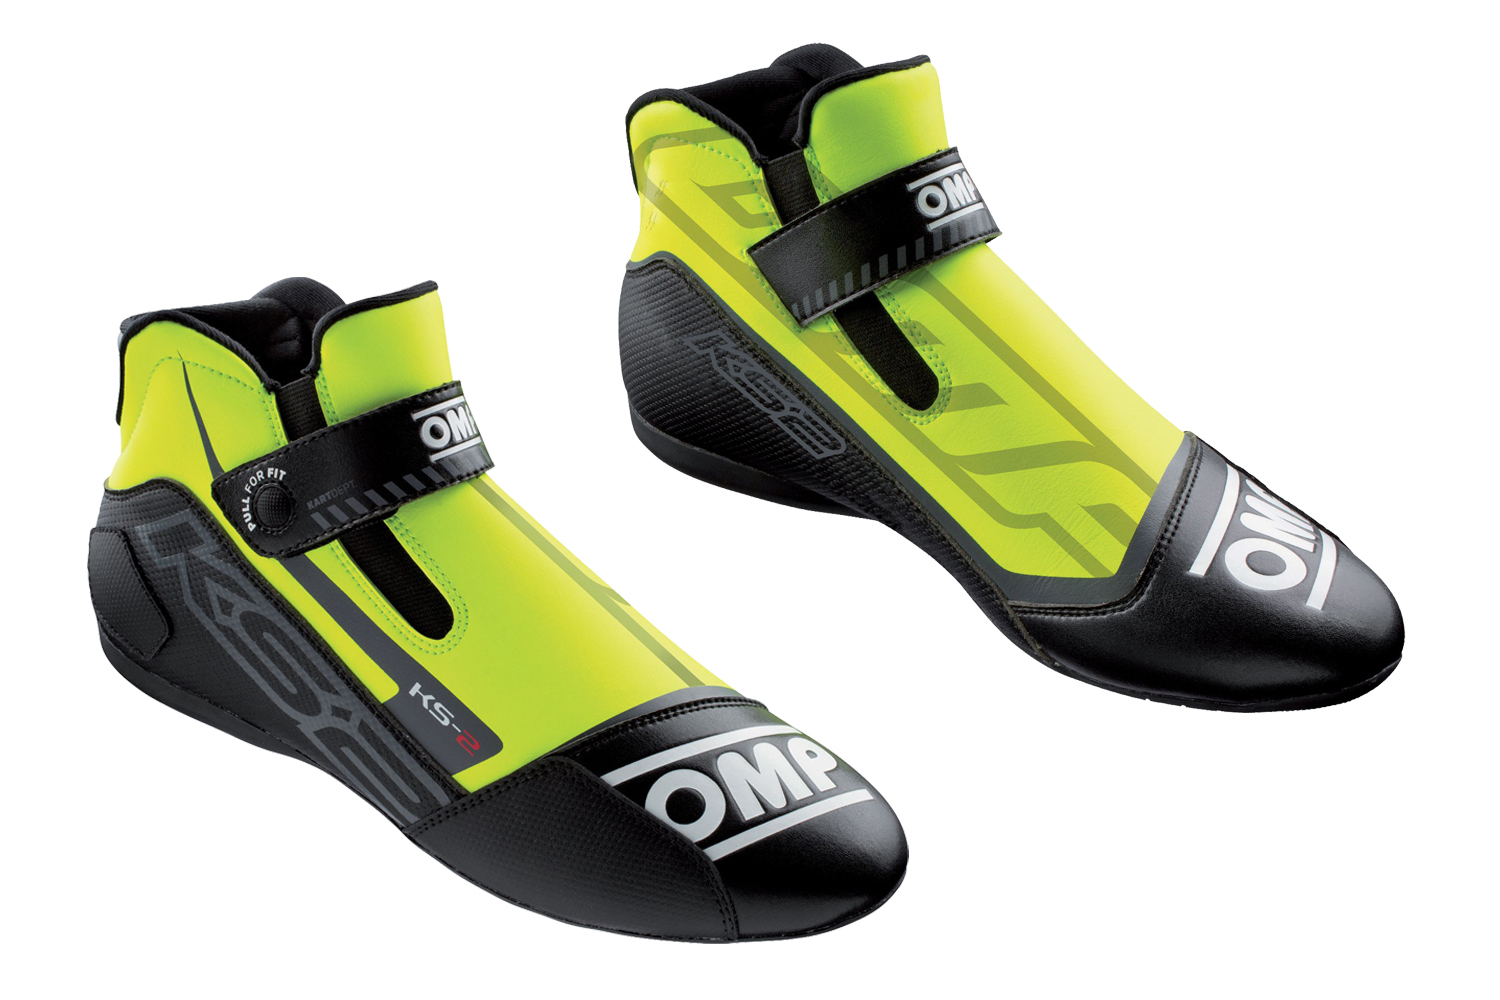 OMP Racing IC82505944 Shoe, KS-2, Driving, Mid-Top, FIA Approved, Suede Leather Outer, Fire Retardant Fabric Inner, Fluorescent Yellow / Black, Size 10, Pair